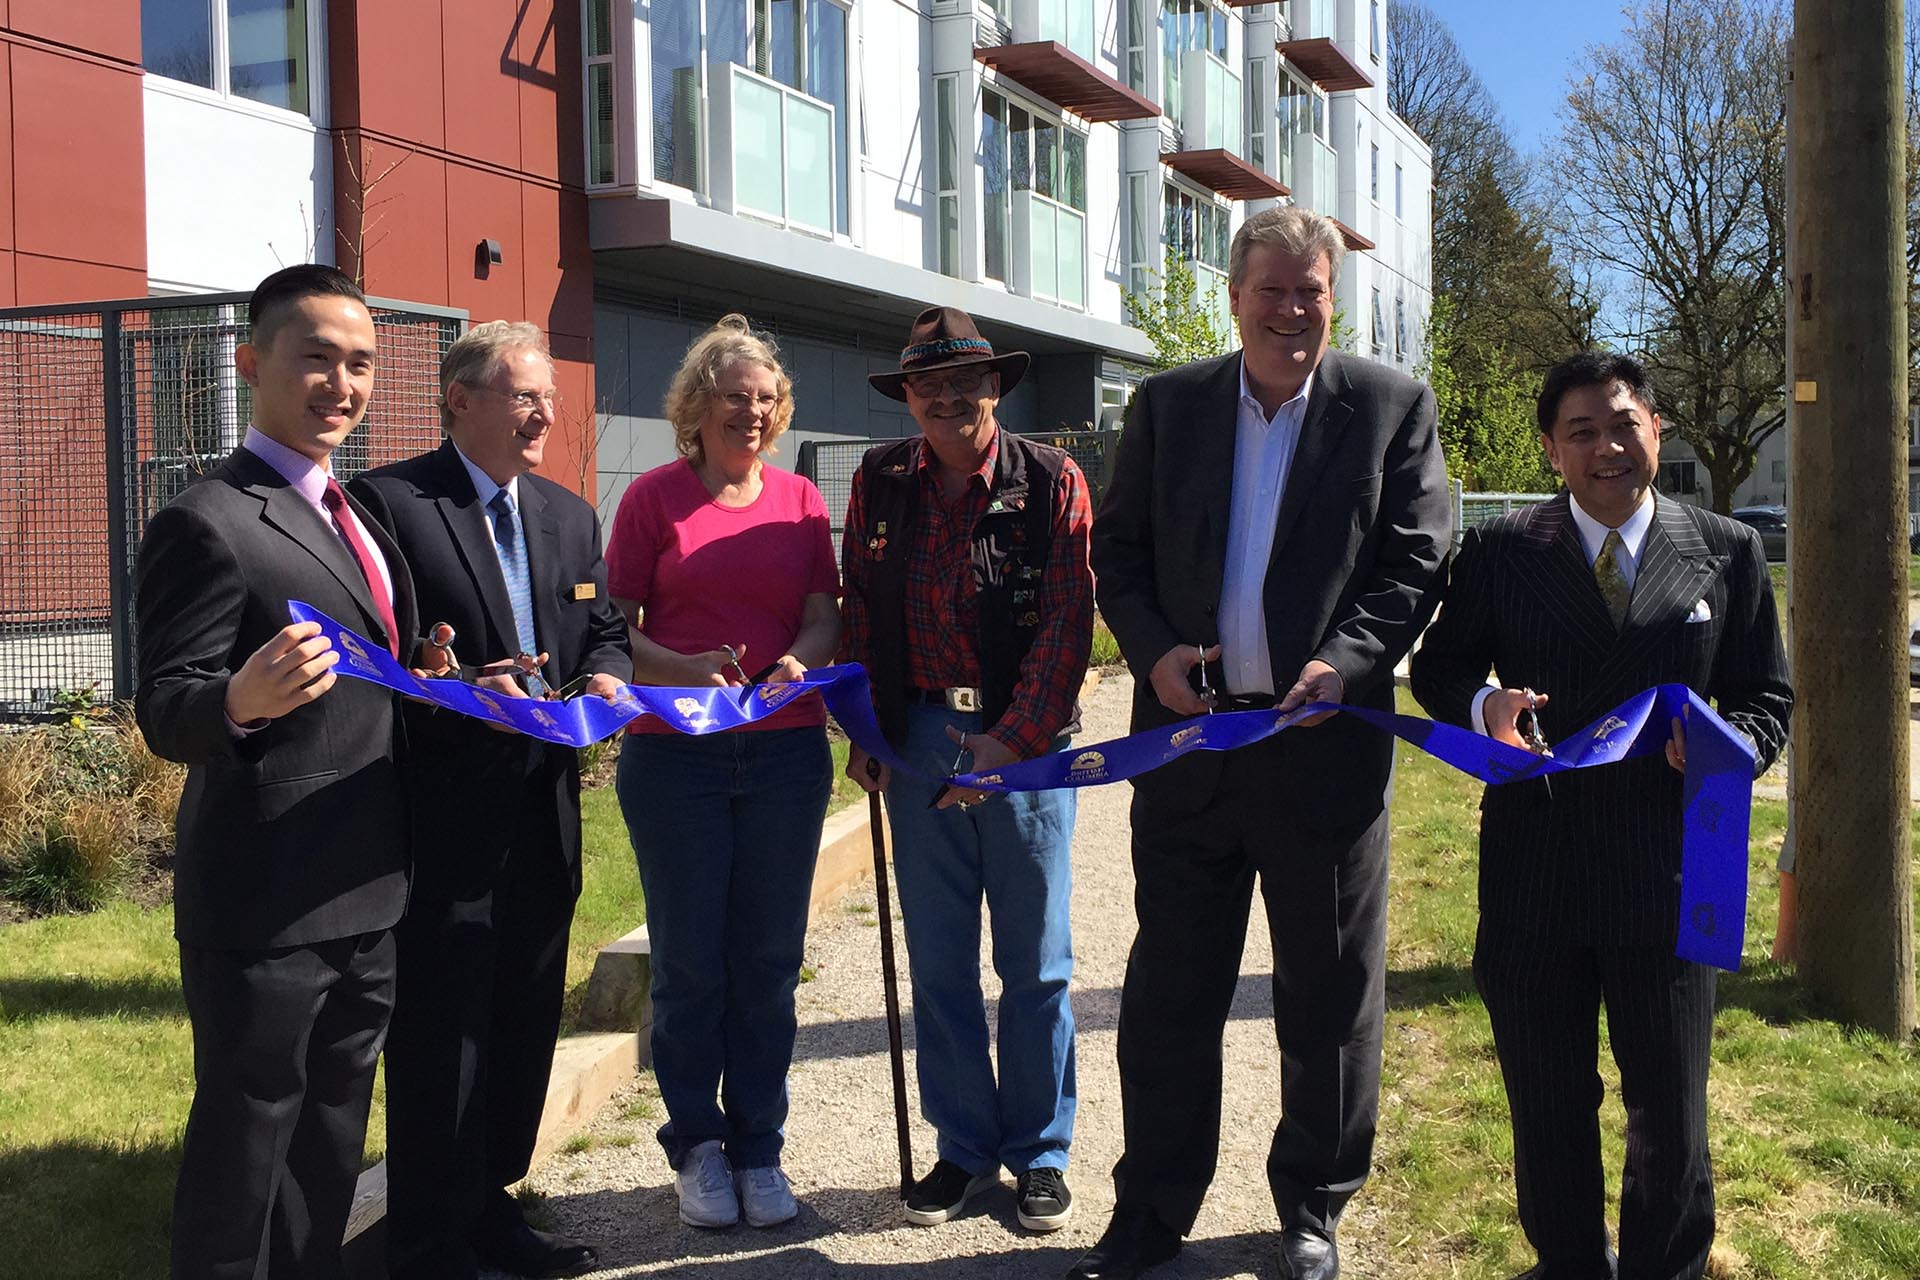 Seniors housing opens at Little Mountain